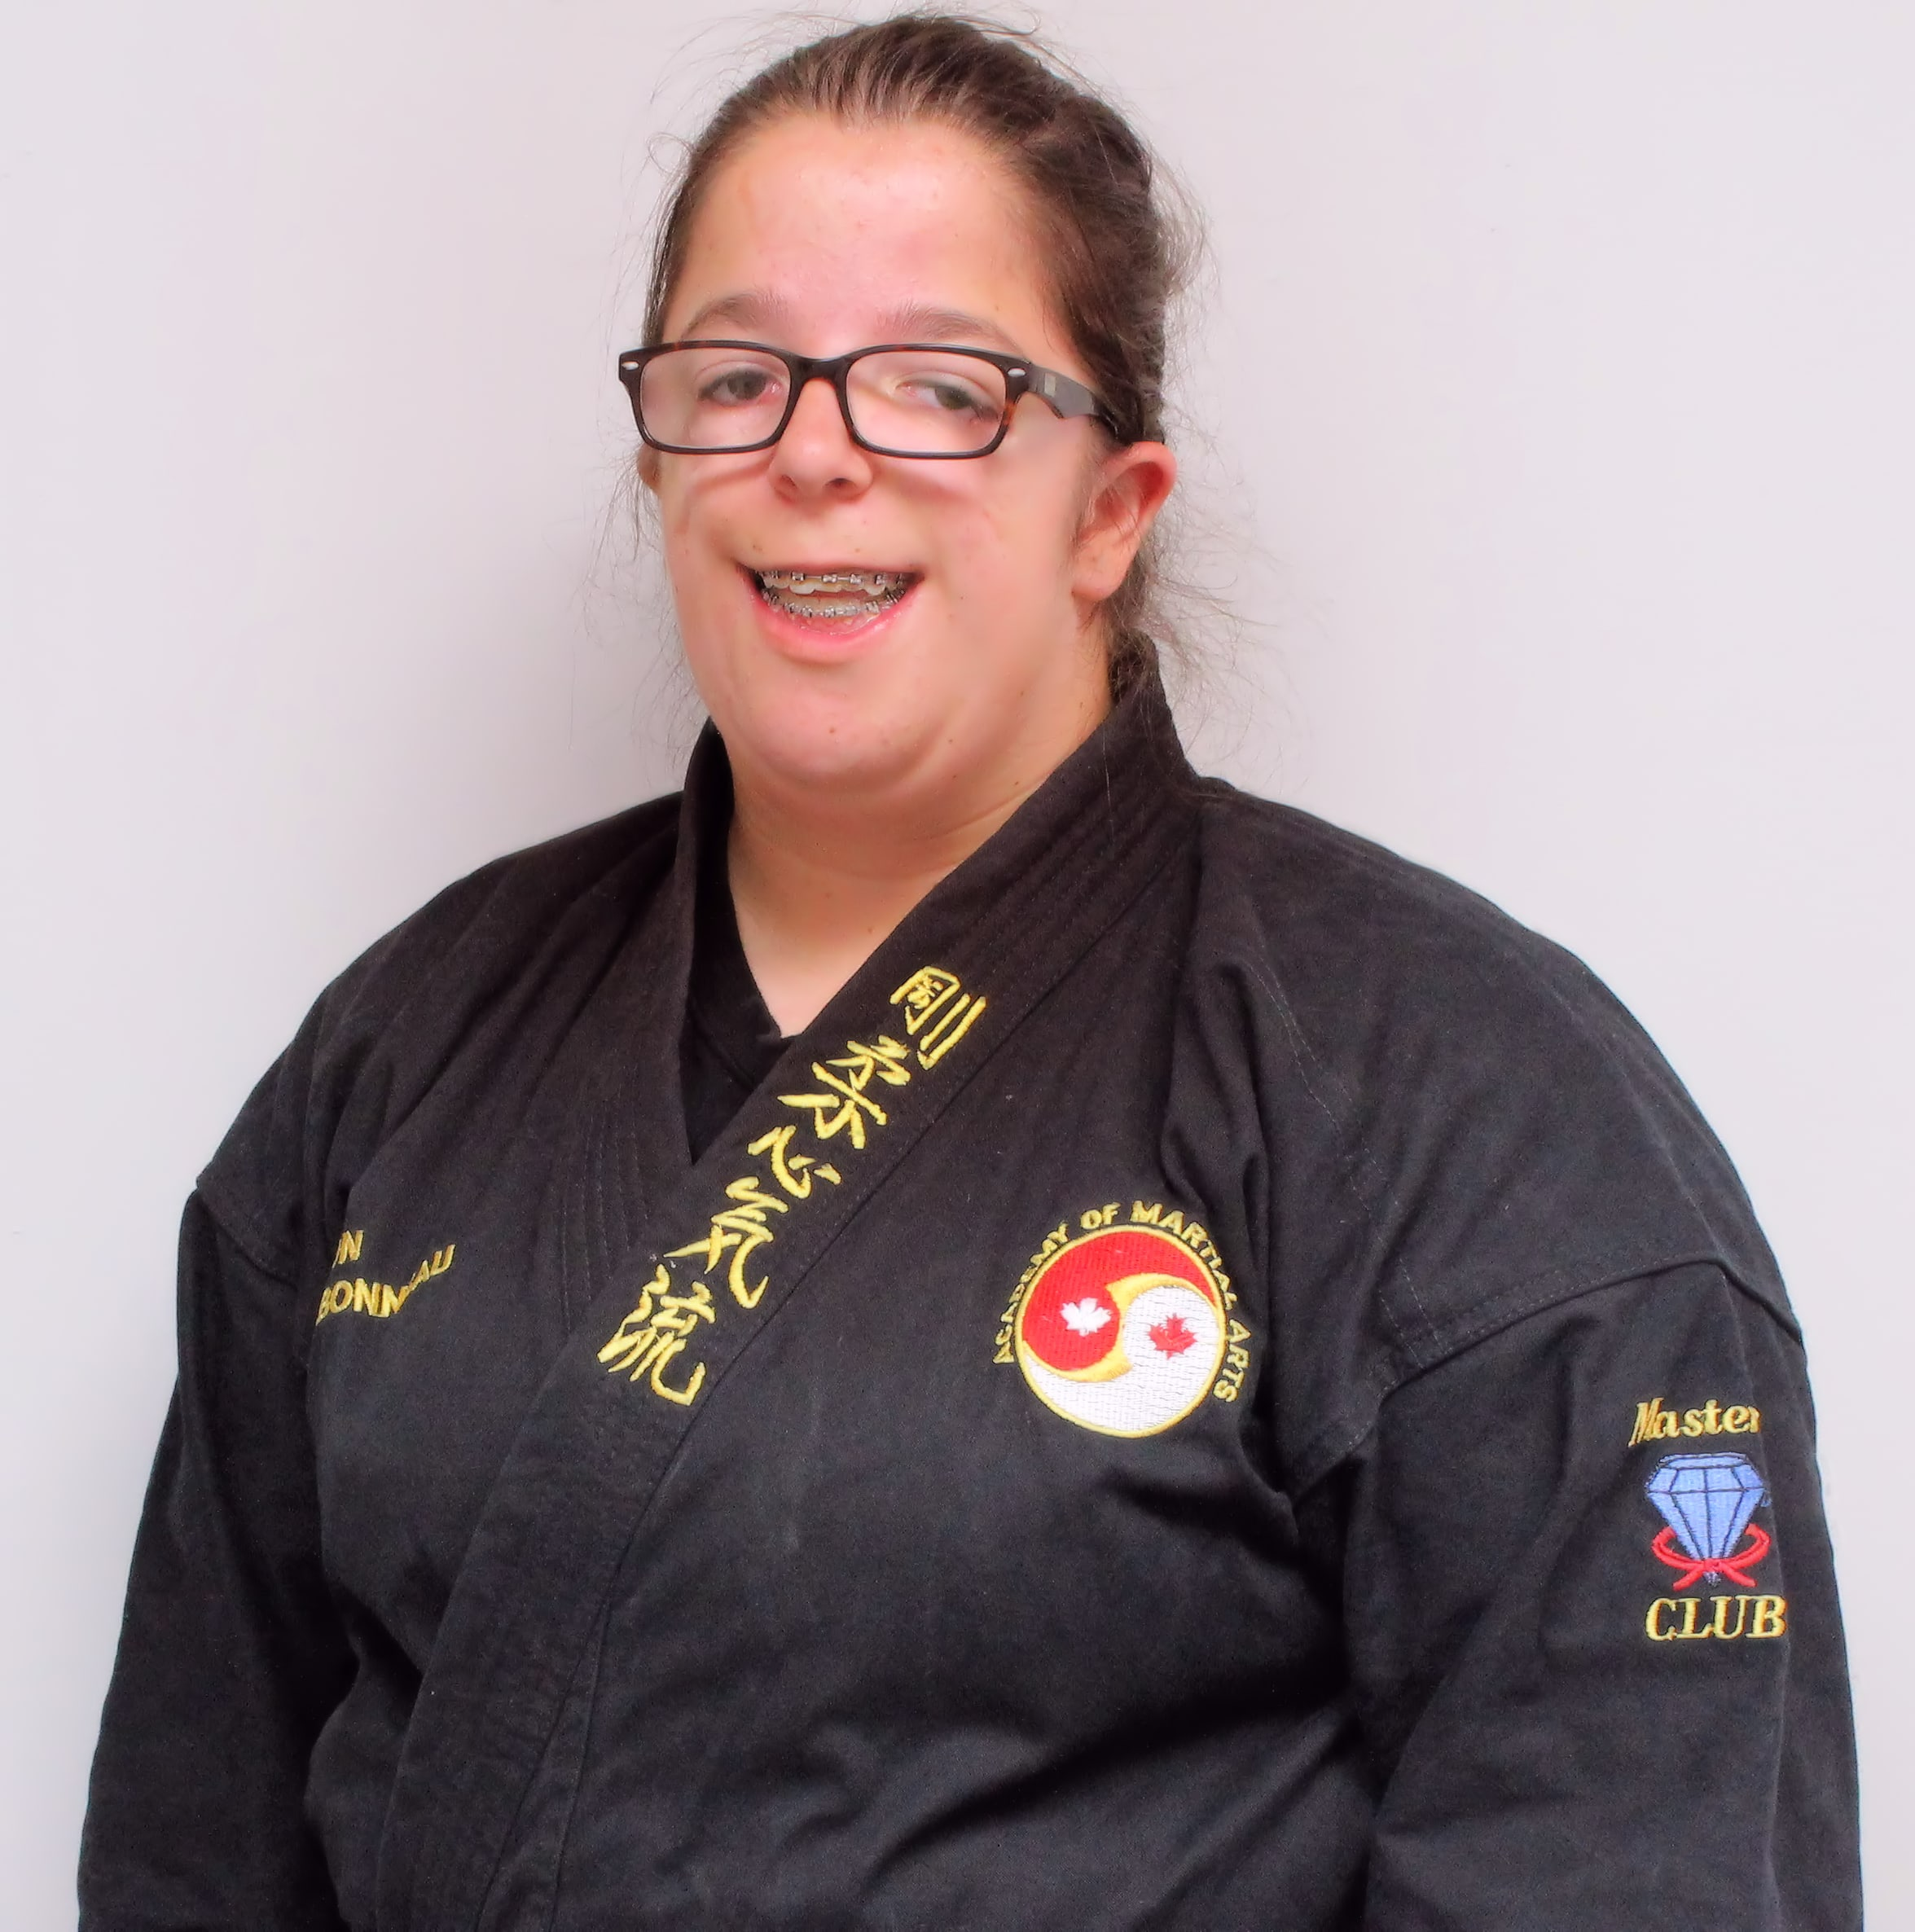 Shannon Charbonneau in Mississauga - Academy Of Martial Arts